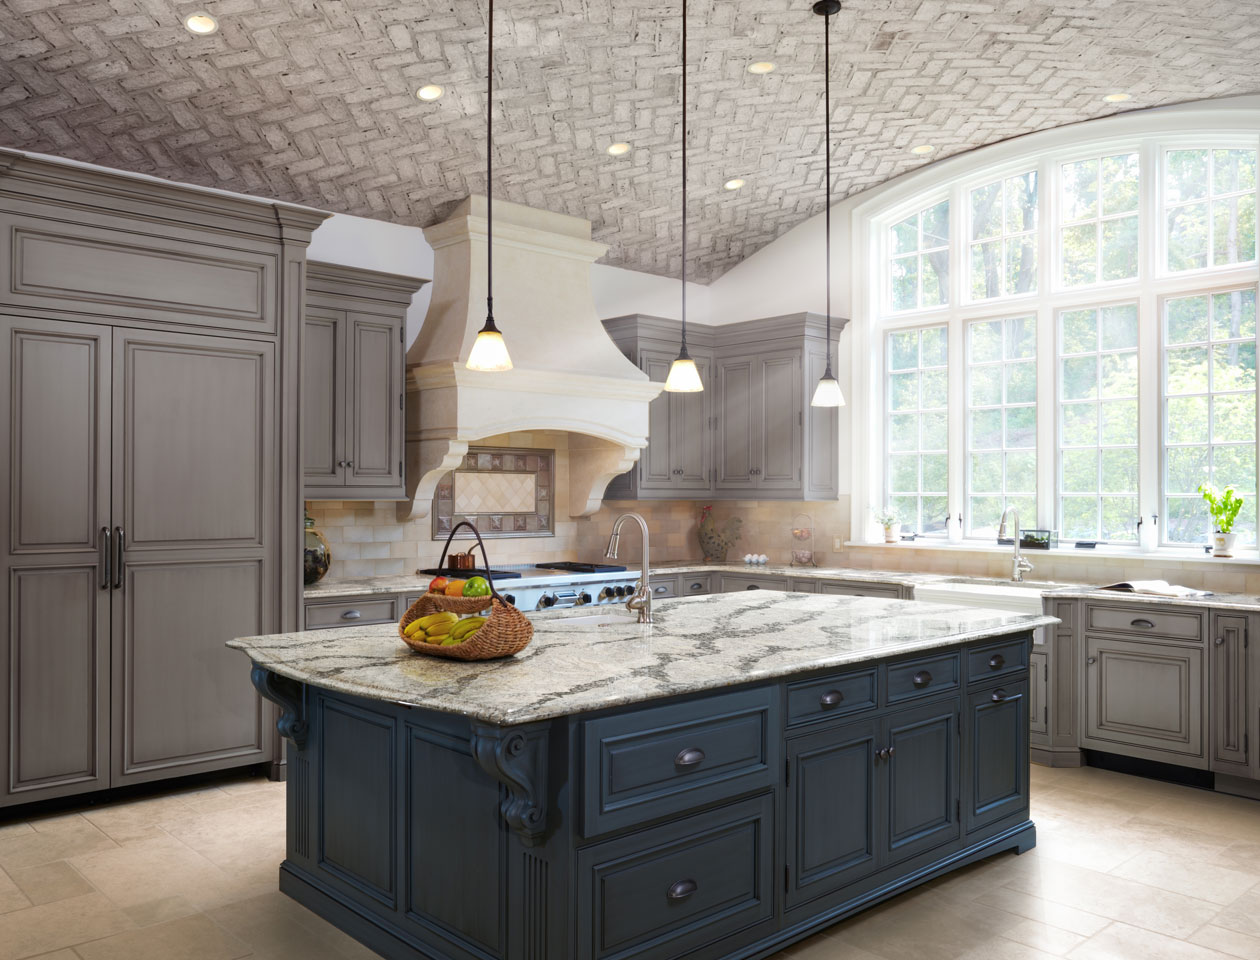 New Hampshire Cambria Quartz Countertops Dealer